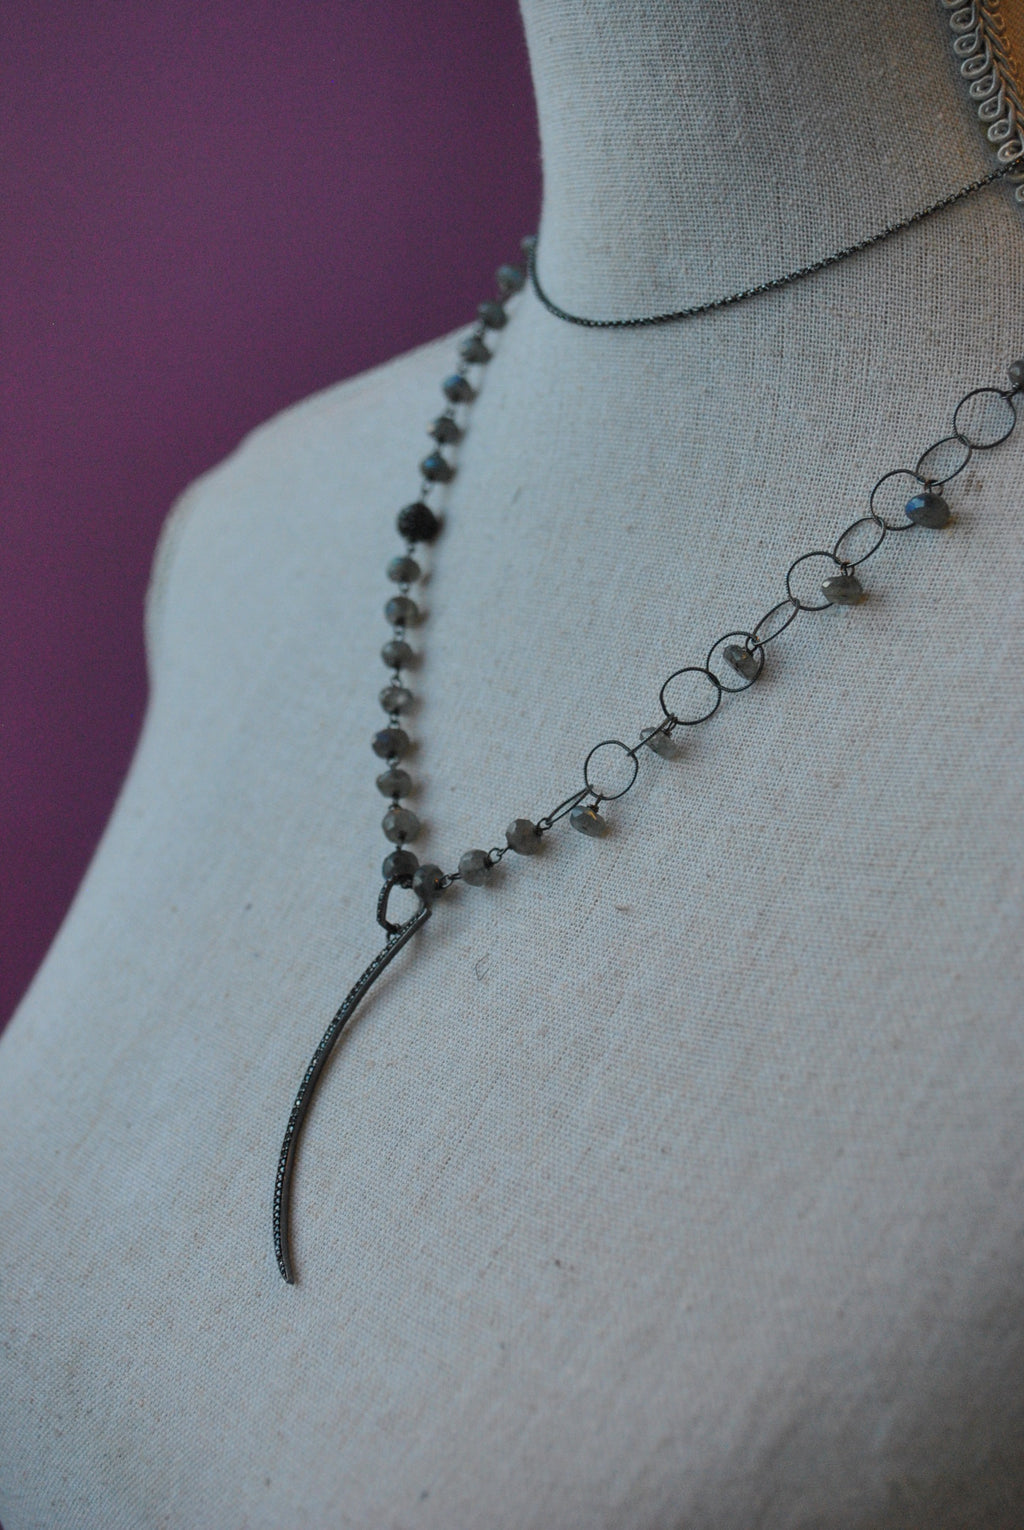 NATURAL LABRADORITE RONDELLES AND RHINESTONES MOON PENDANT STERLING SILVER LONG DELICATE NECKLACE